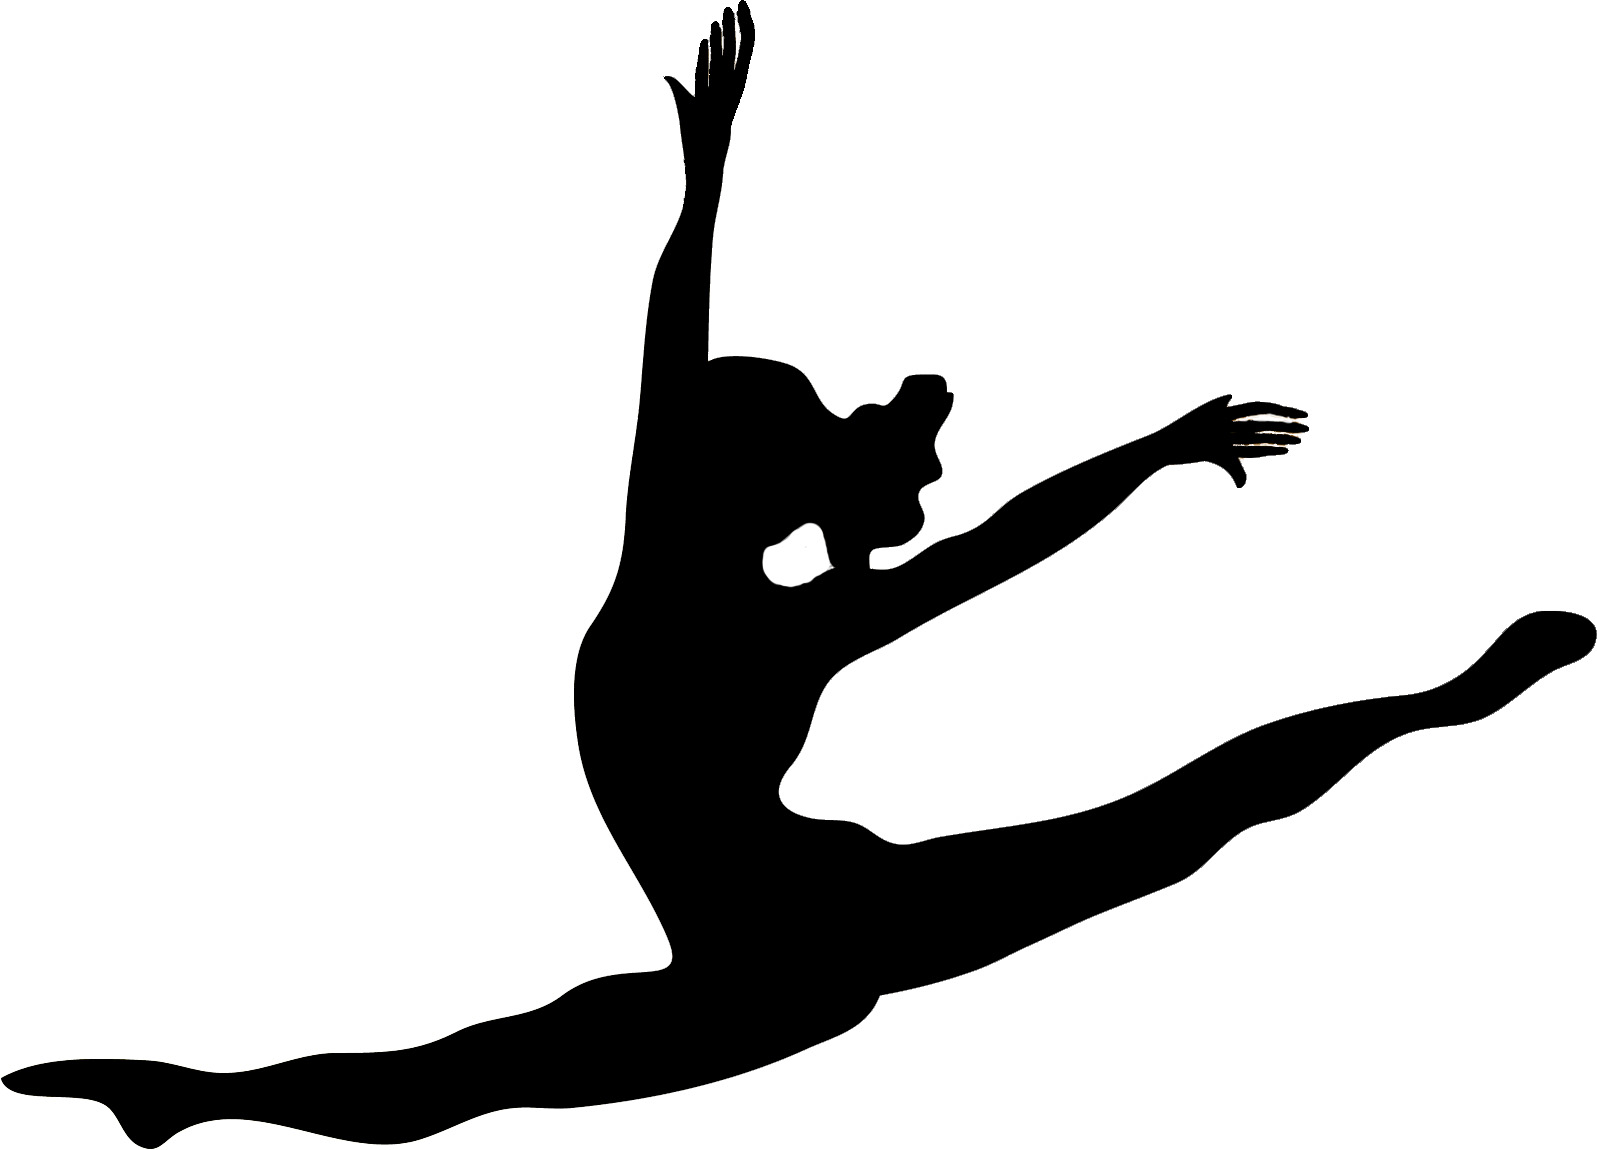 Dancer Clipart Silhouette Leap | Clipart Panda - Free Clipart Images: www.clipartpanda.com/categories/dancer-clipart-silhouette-leap